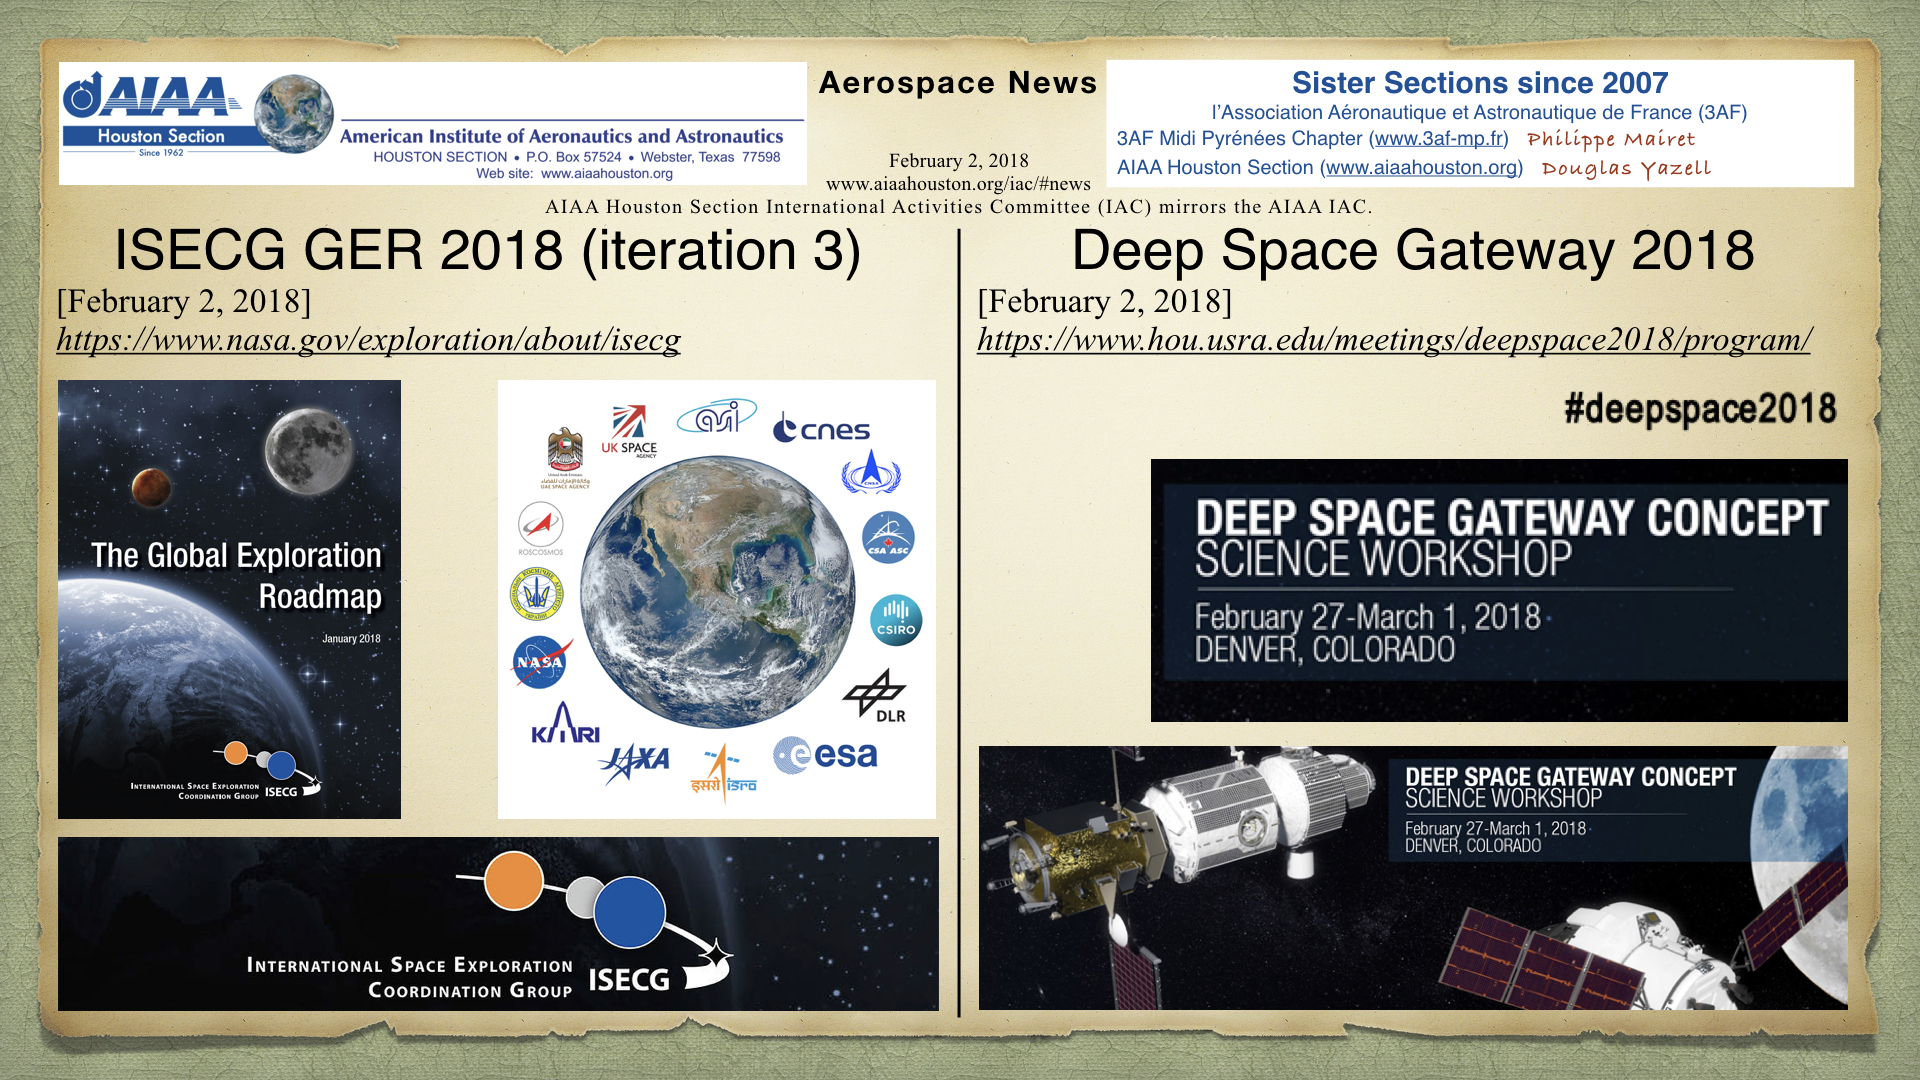 Above: ISCEG GER 2018 and Deep Space Gateway 2018. Image credits: NASA, LPI, USRA. (Click to zoom.)